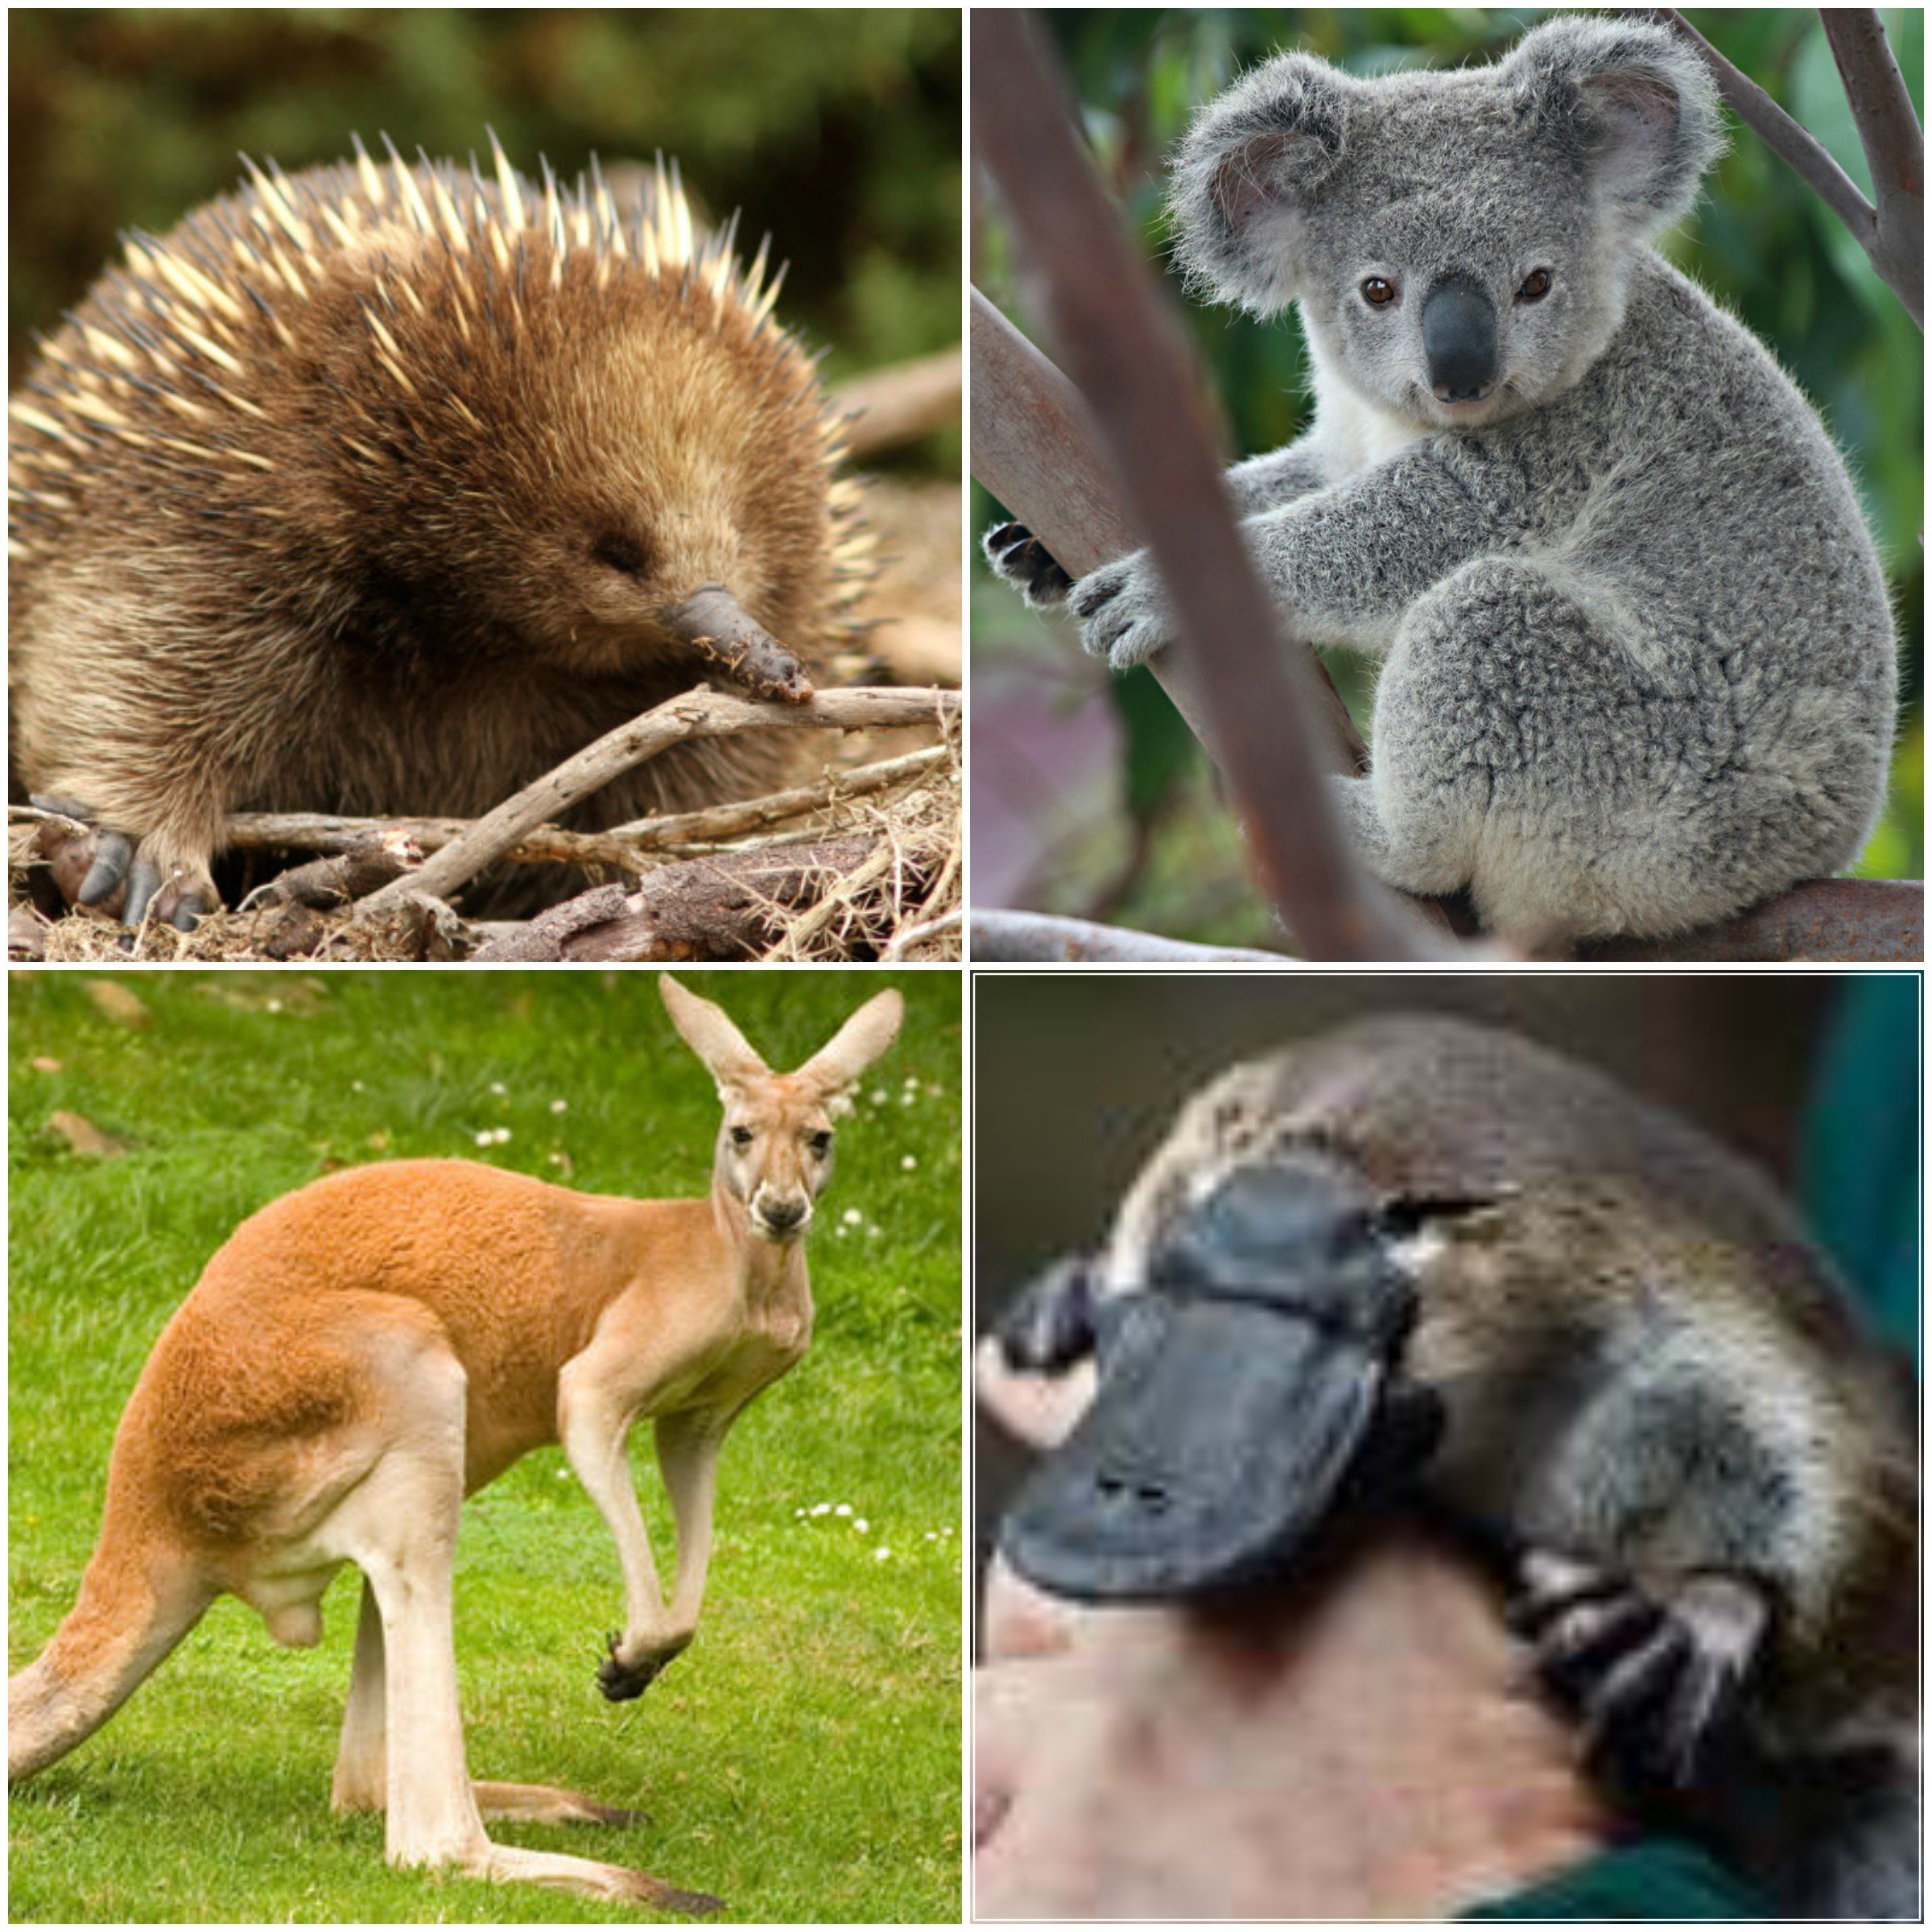 The most famous native animals in Australia are kangaroos